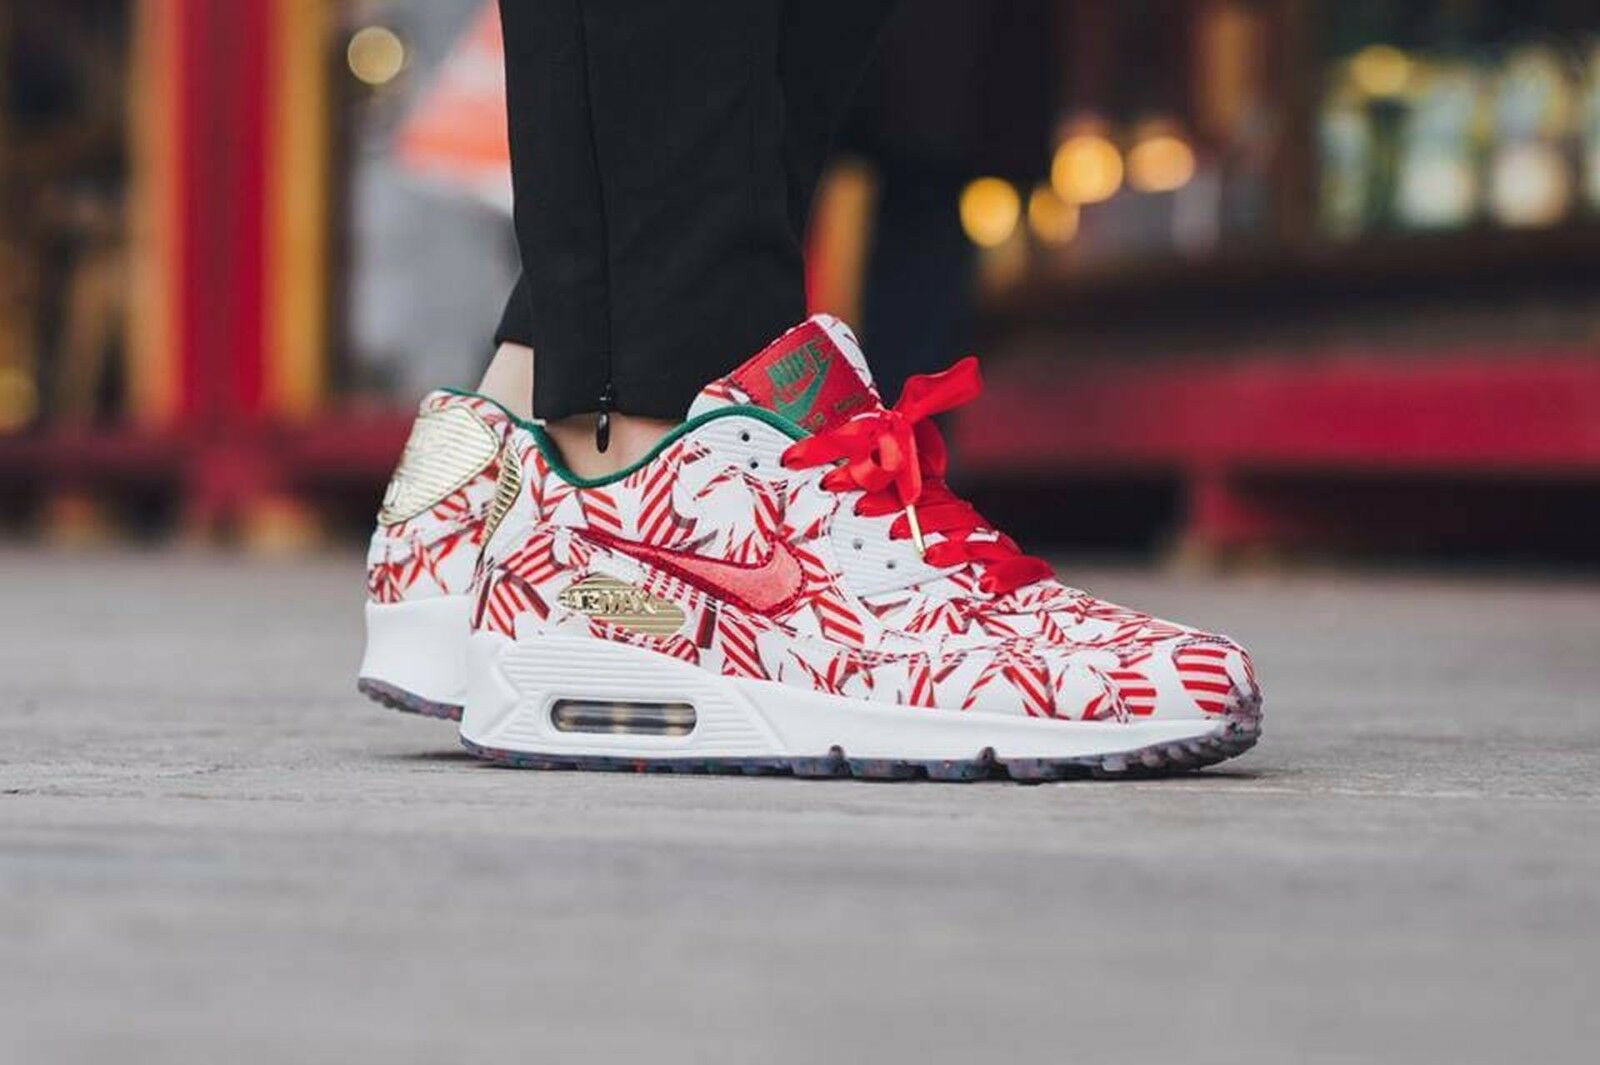 Nike air max 90 qs natale white-university red-gold 813150-101 wmn sz 6